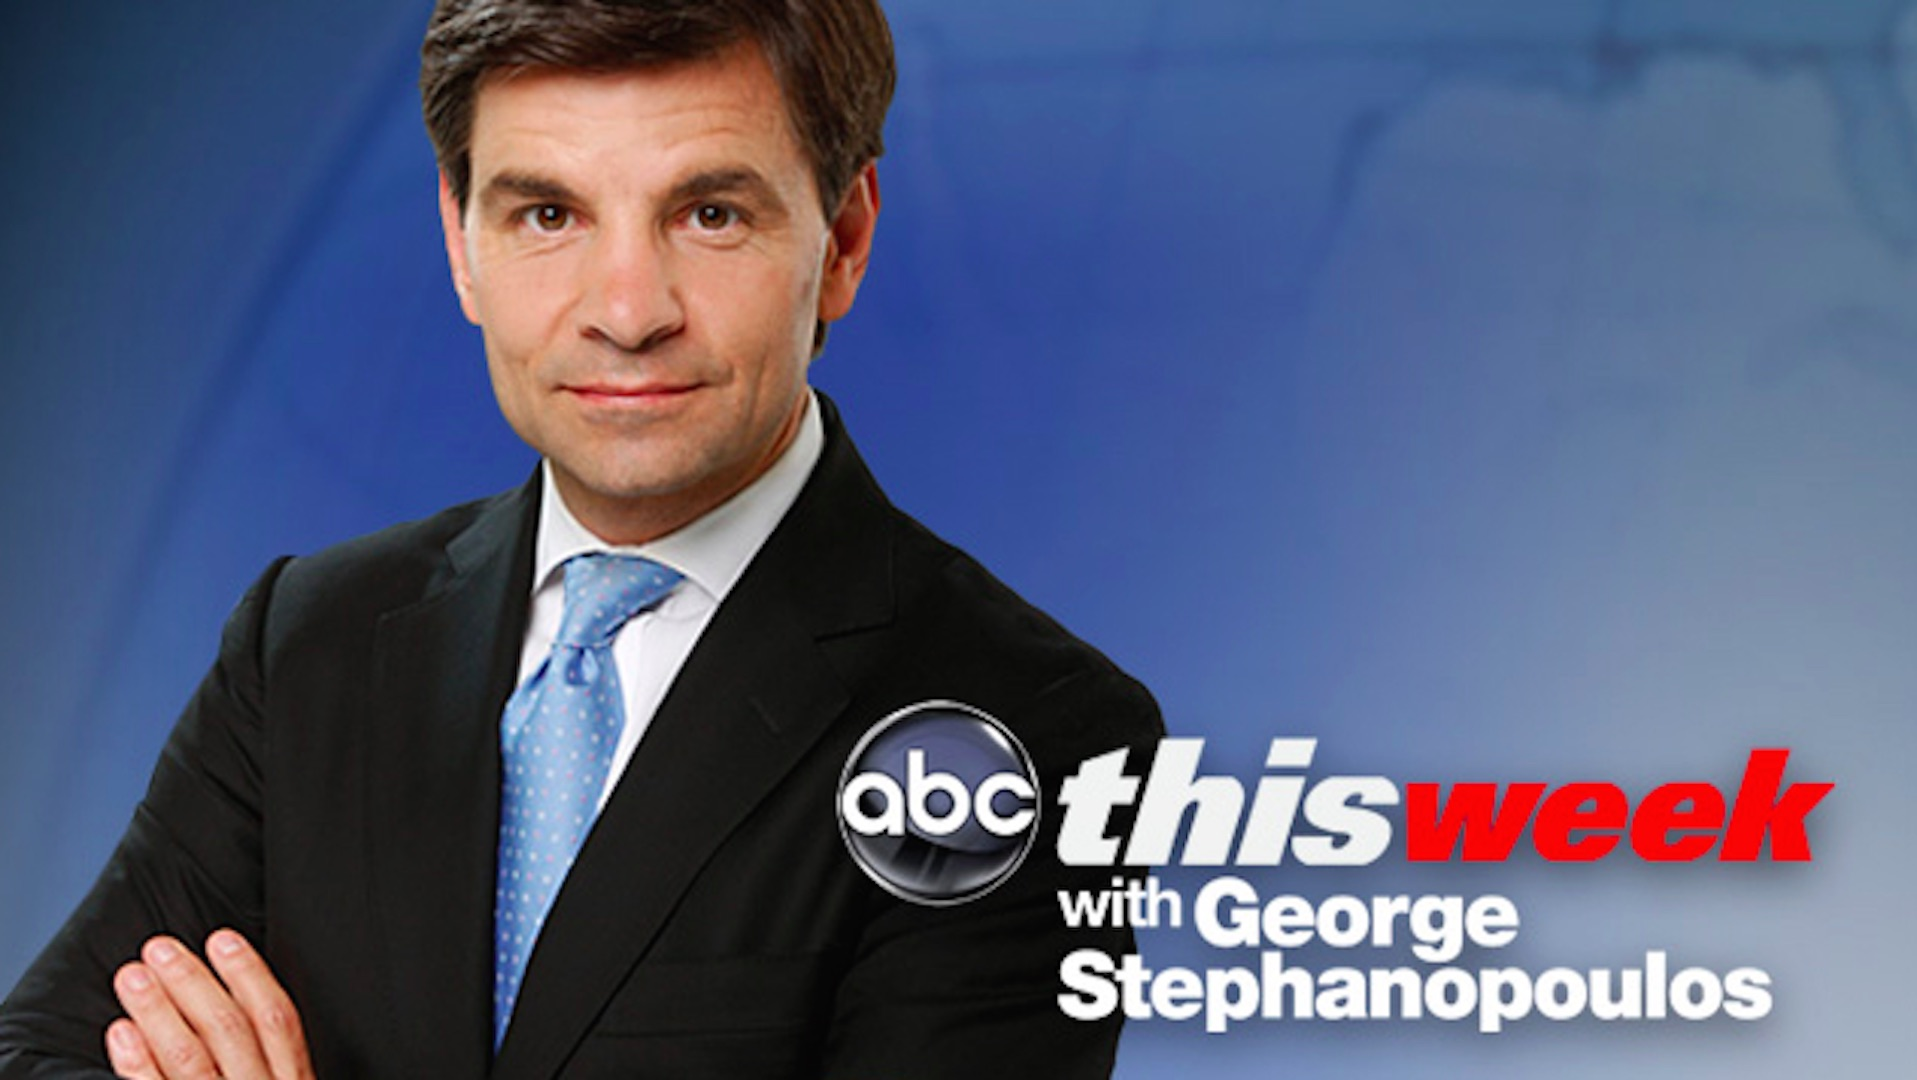 george stephanopoulos  objective journalist